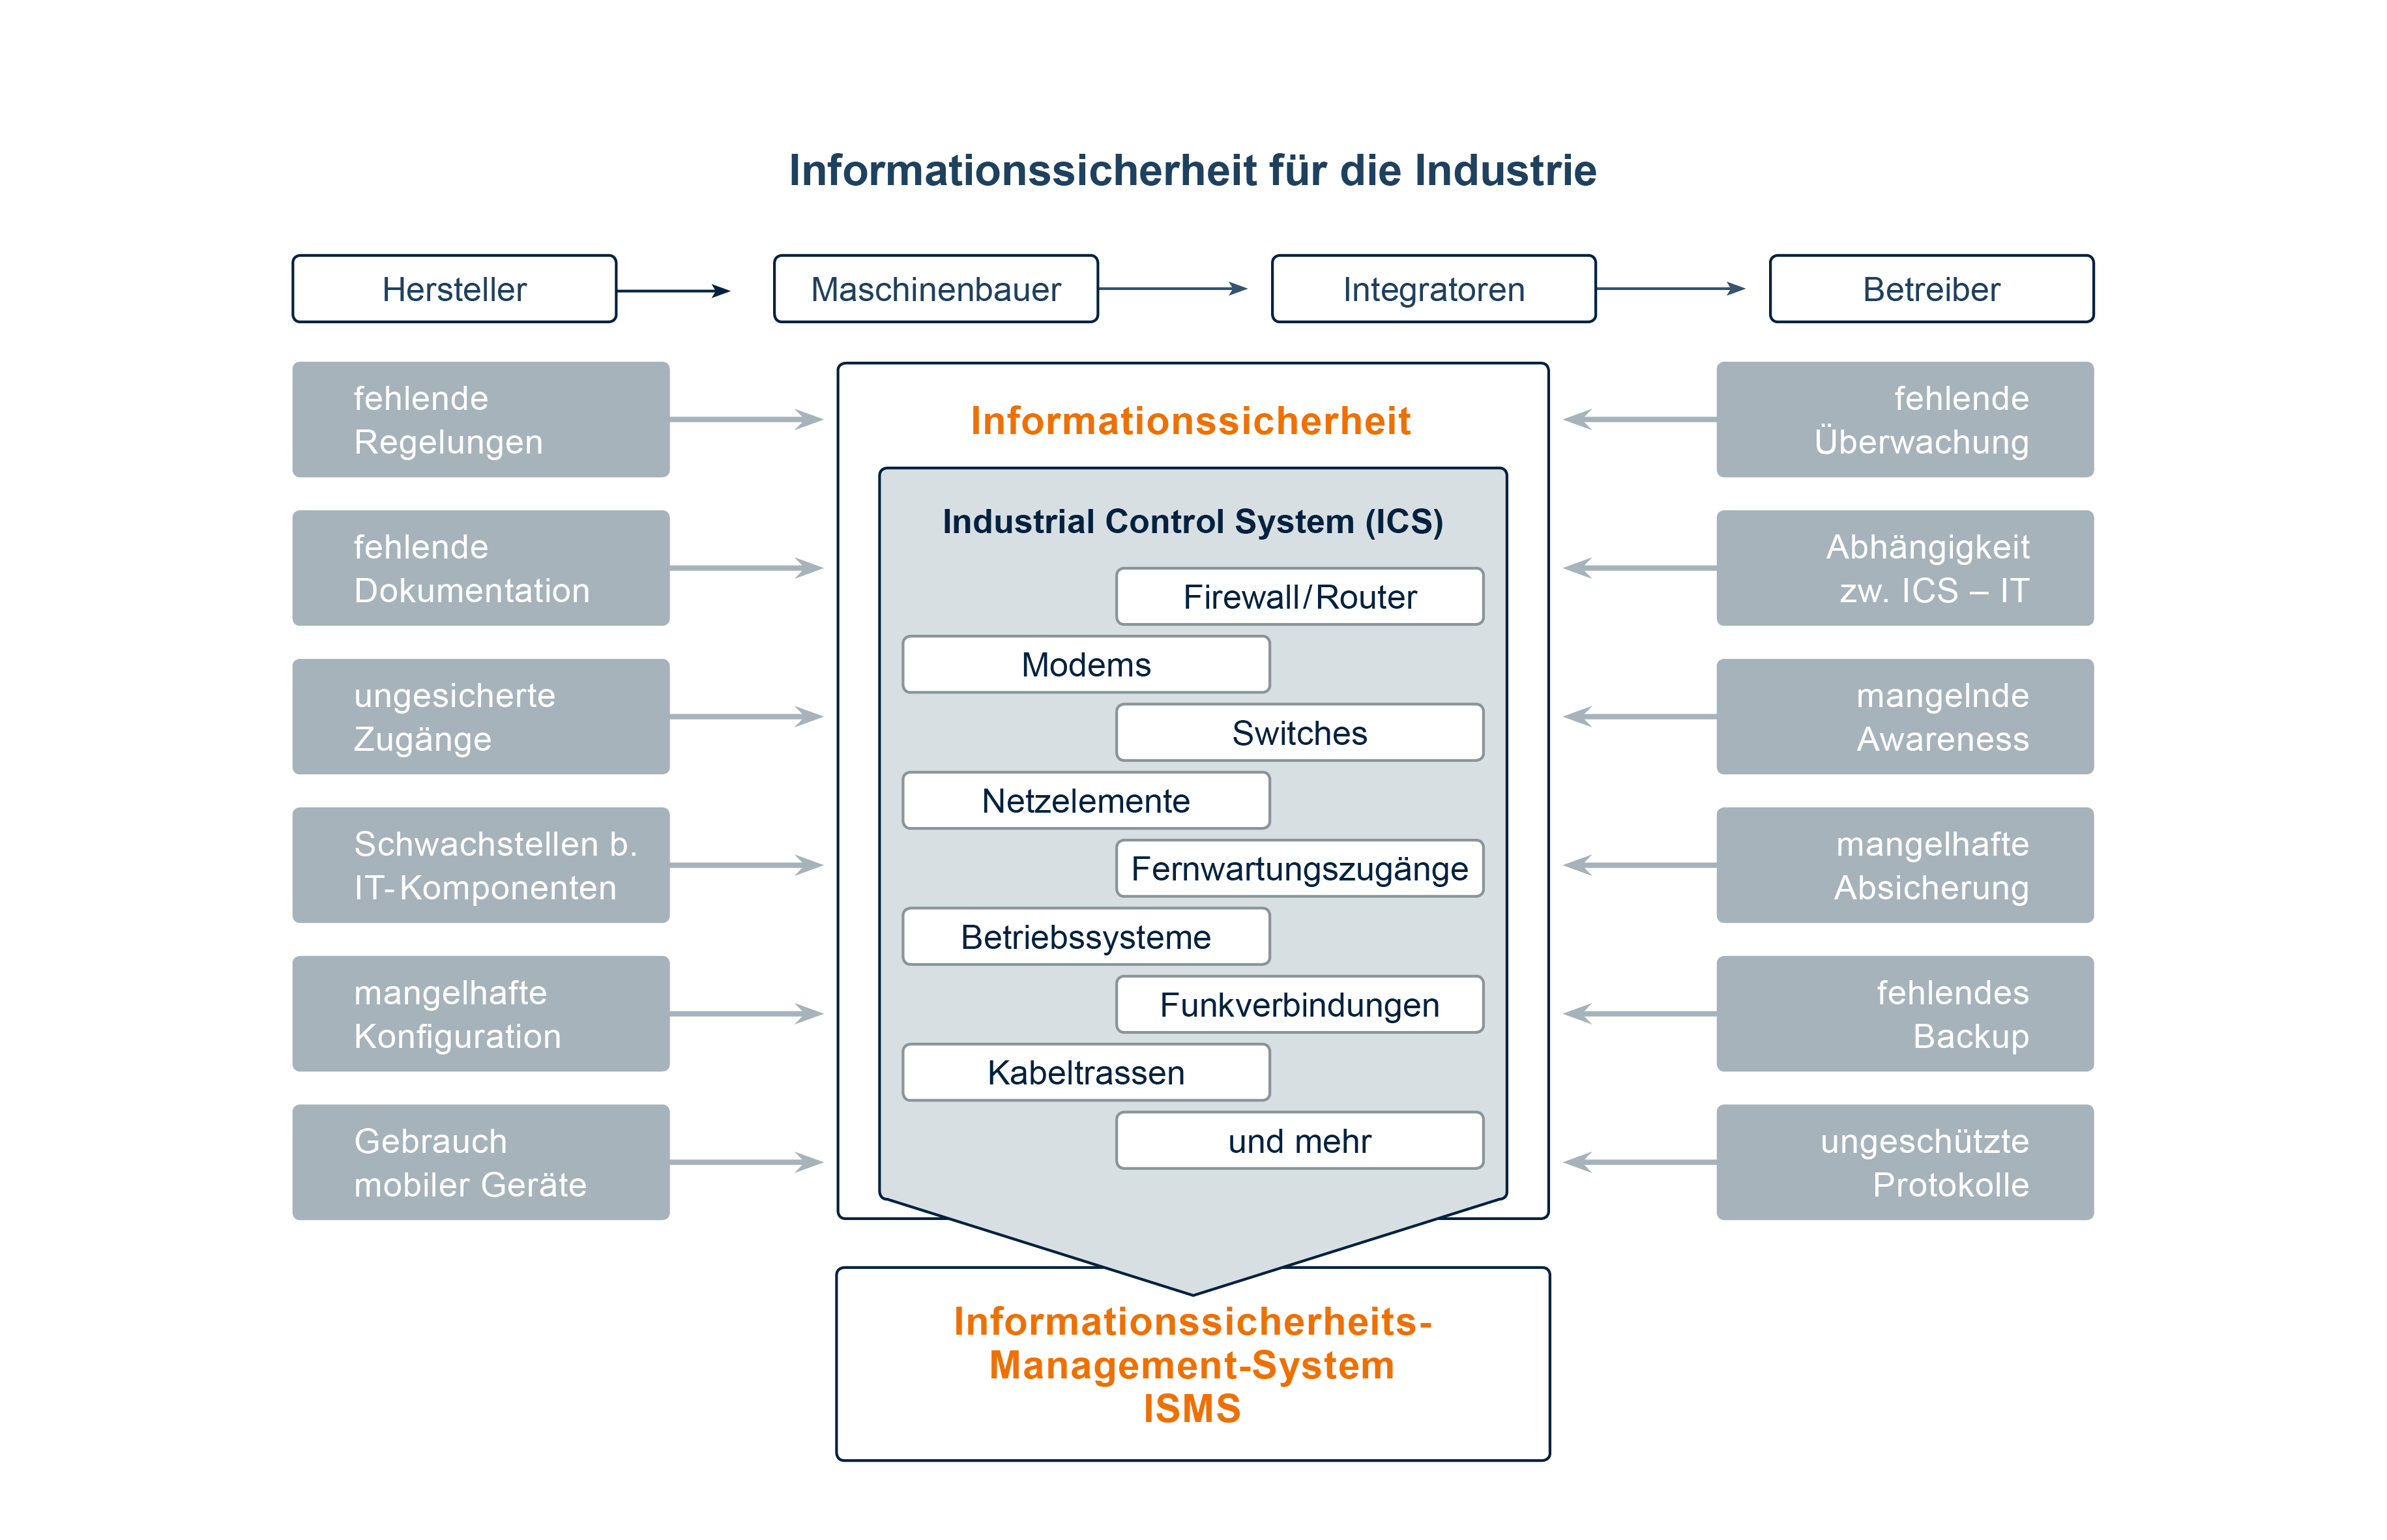 procilon Informationssicherheit Industrie-4.0